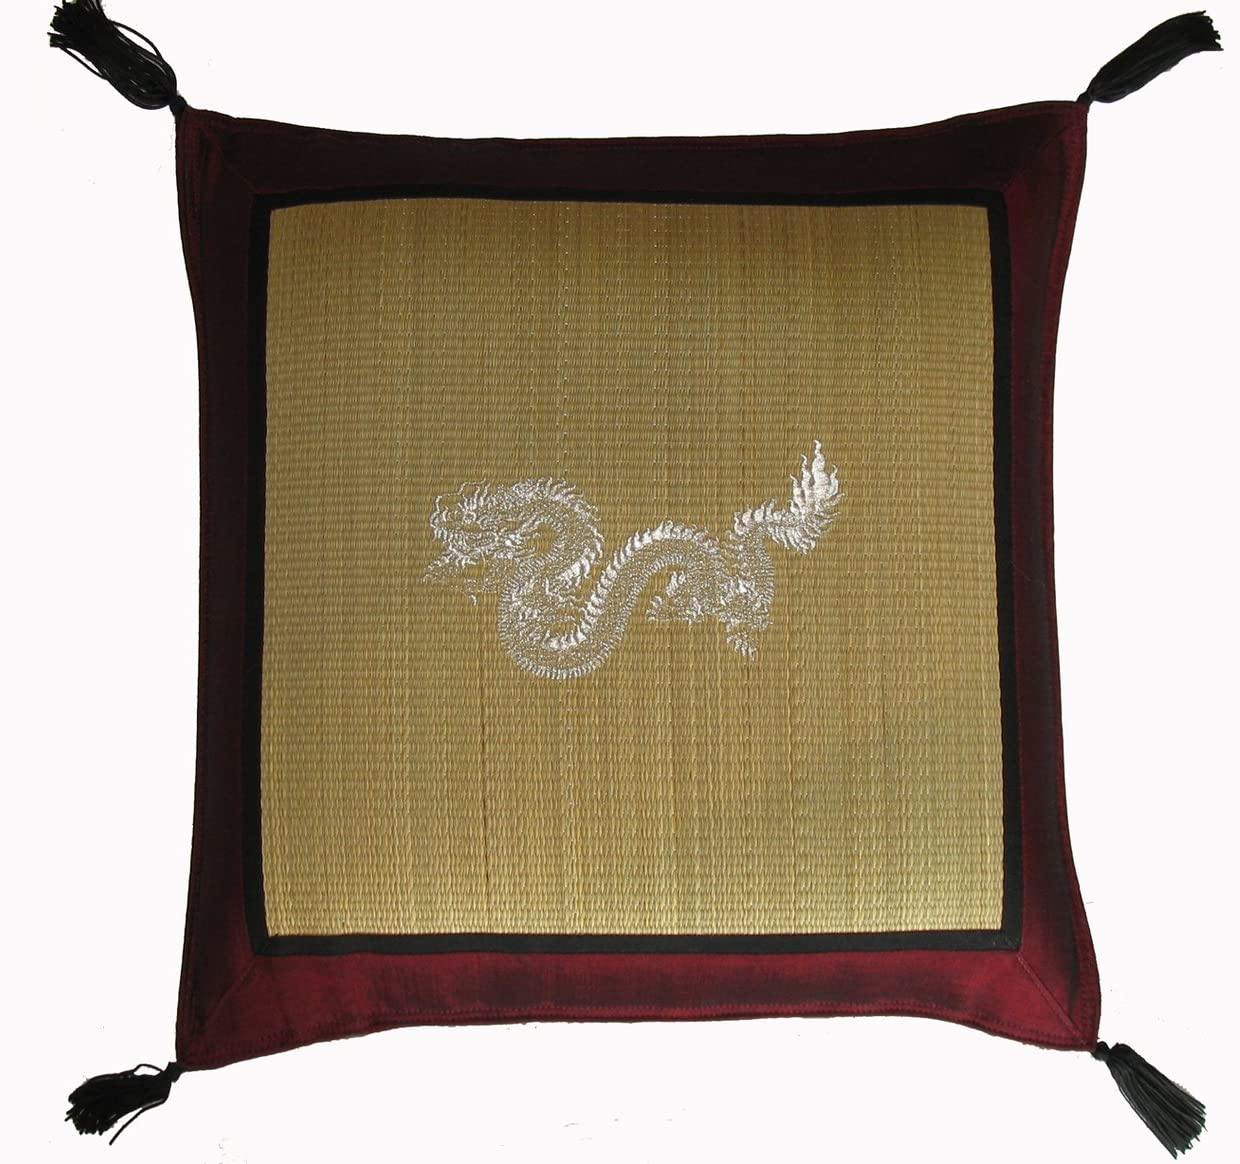 Boon Decor Tatami Japanese Throw Pillow with Embroidered Design & Silk Trim Red Dragon